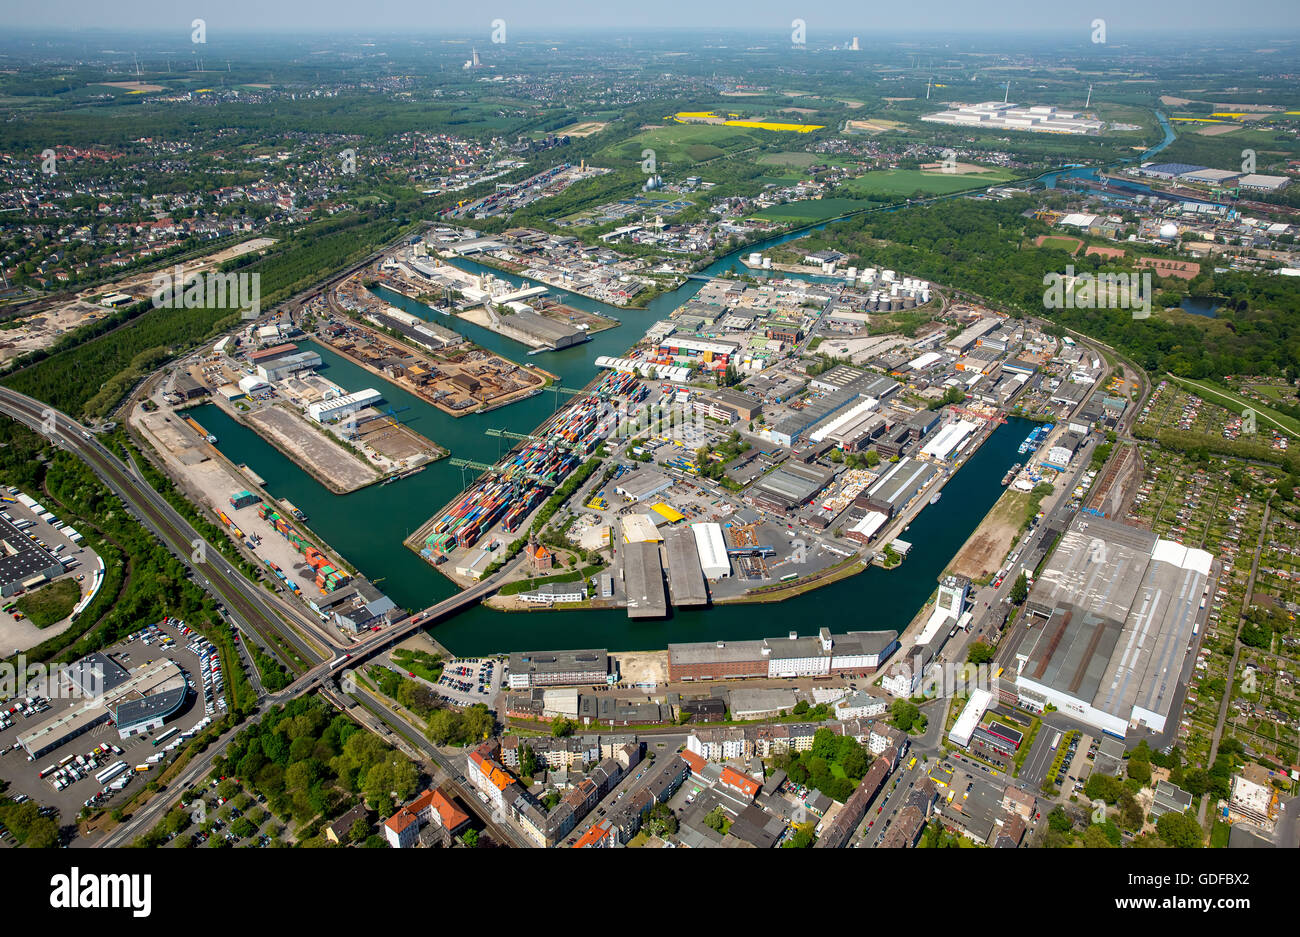 Aerial view, Dortmunder port, inland port, Dortmund-Ems Canal, container port, the Port of Dortmund AG, Dortmund, - Stock Image